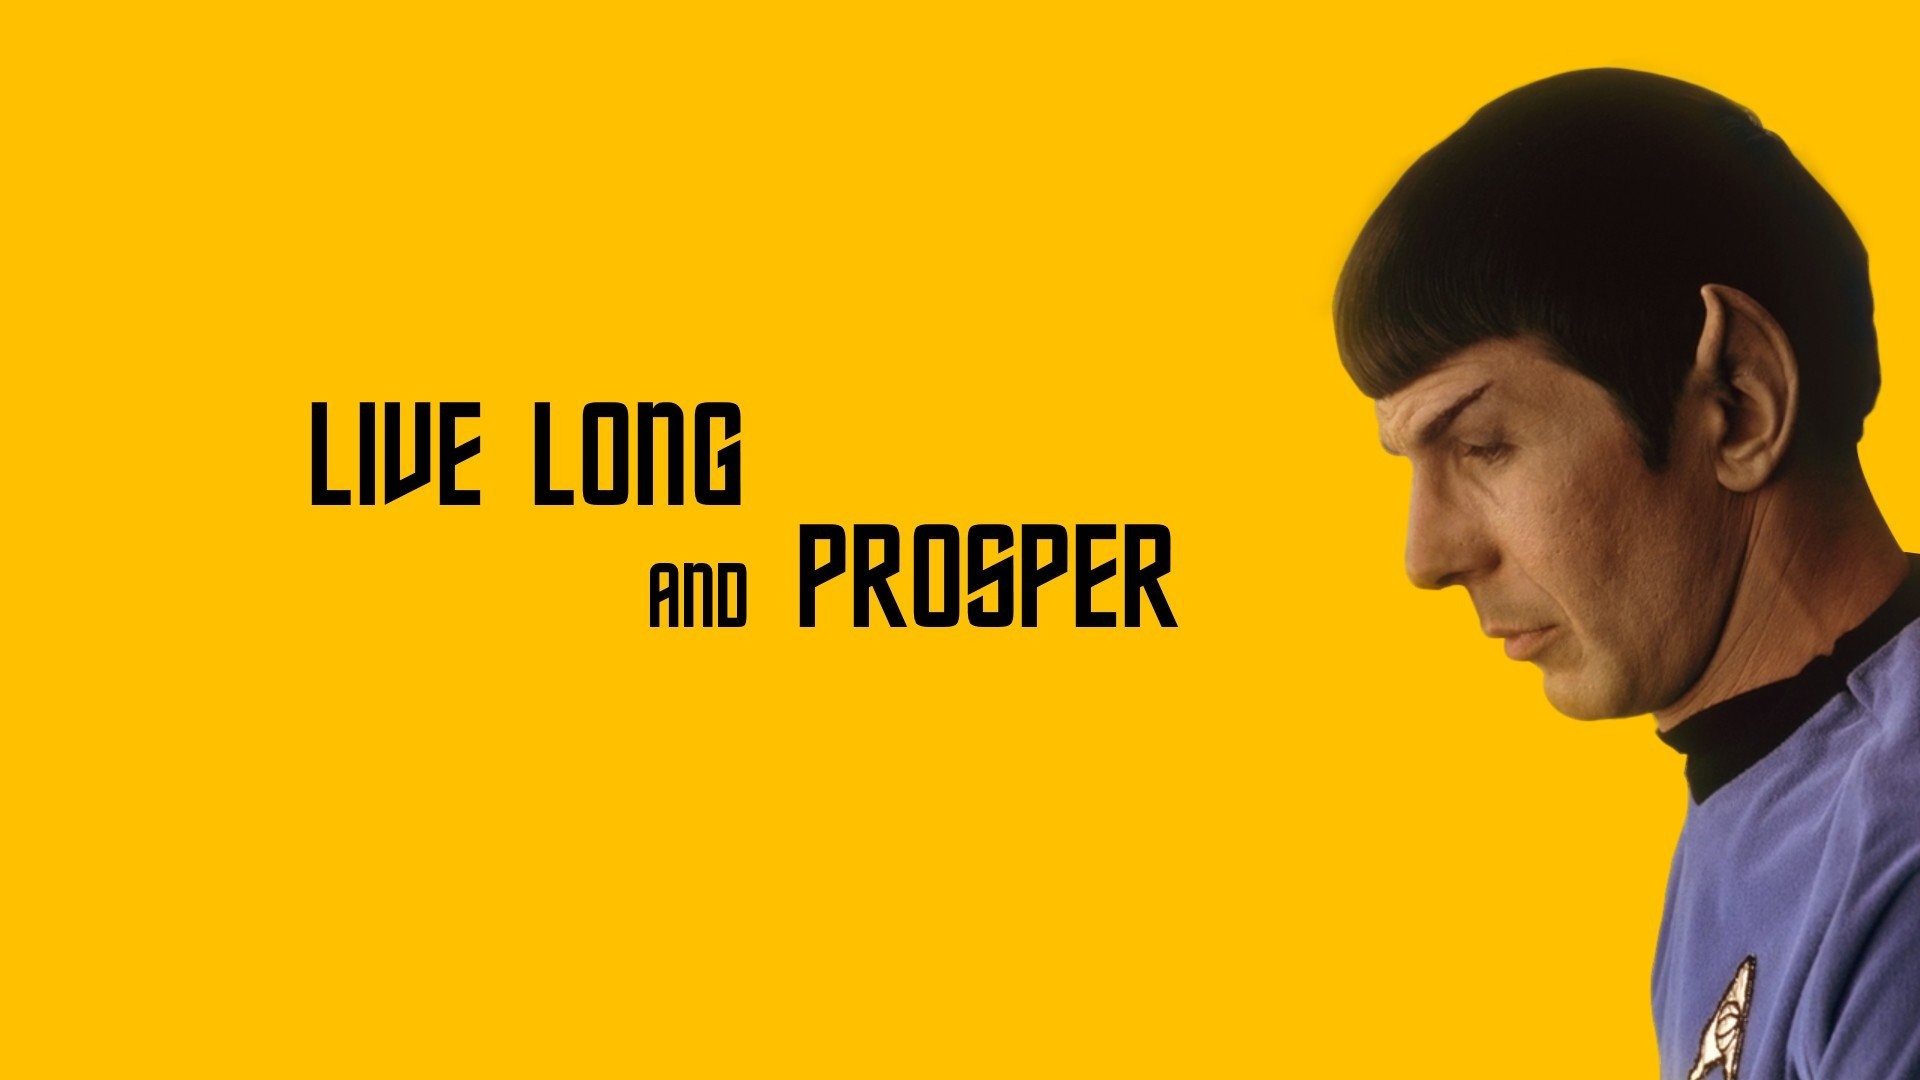 Supreme Wallpaper Girl Cartoon Spock Wallpaper 74 Images